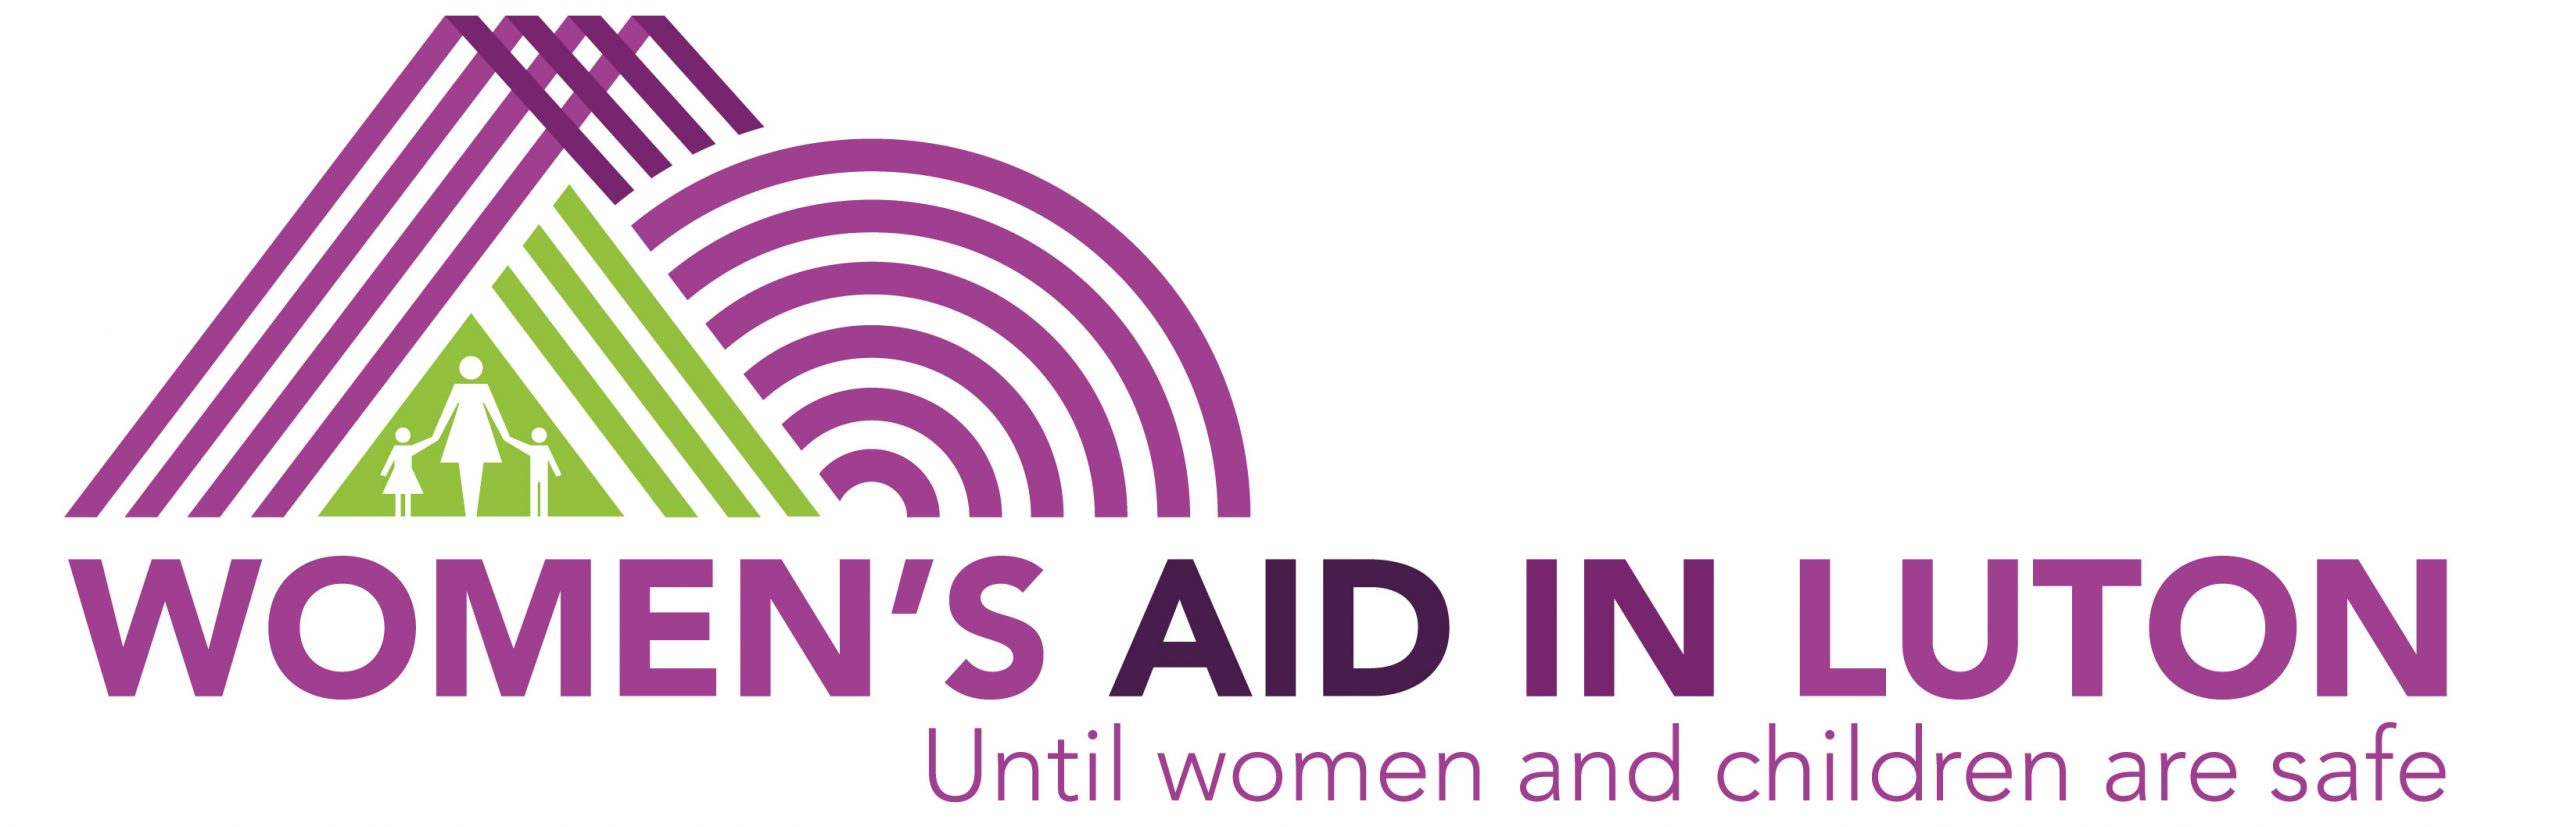 Women's Aid in Luton